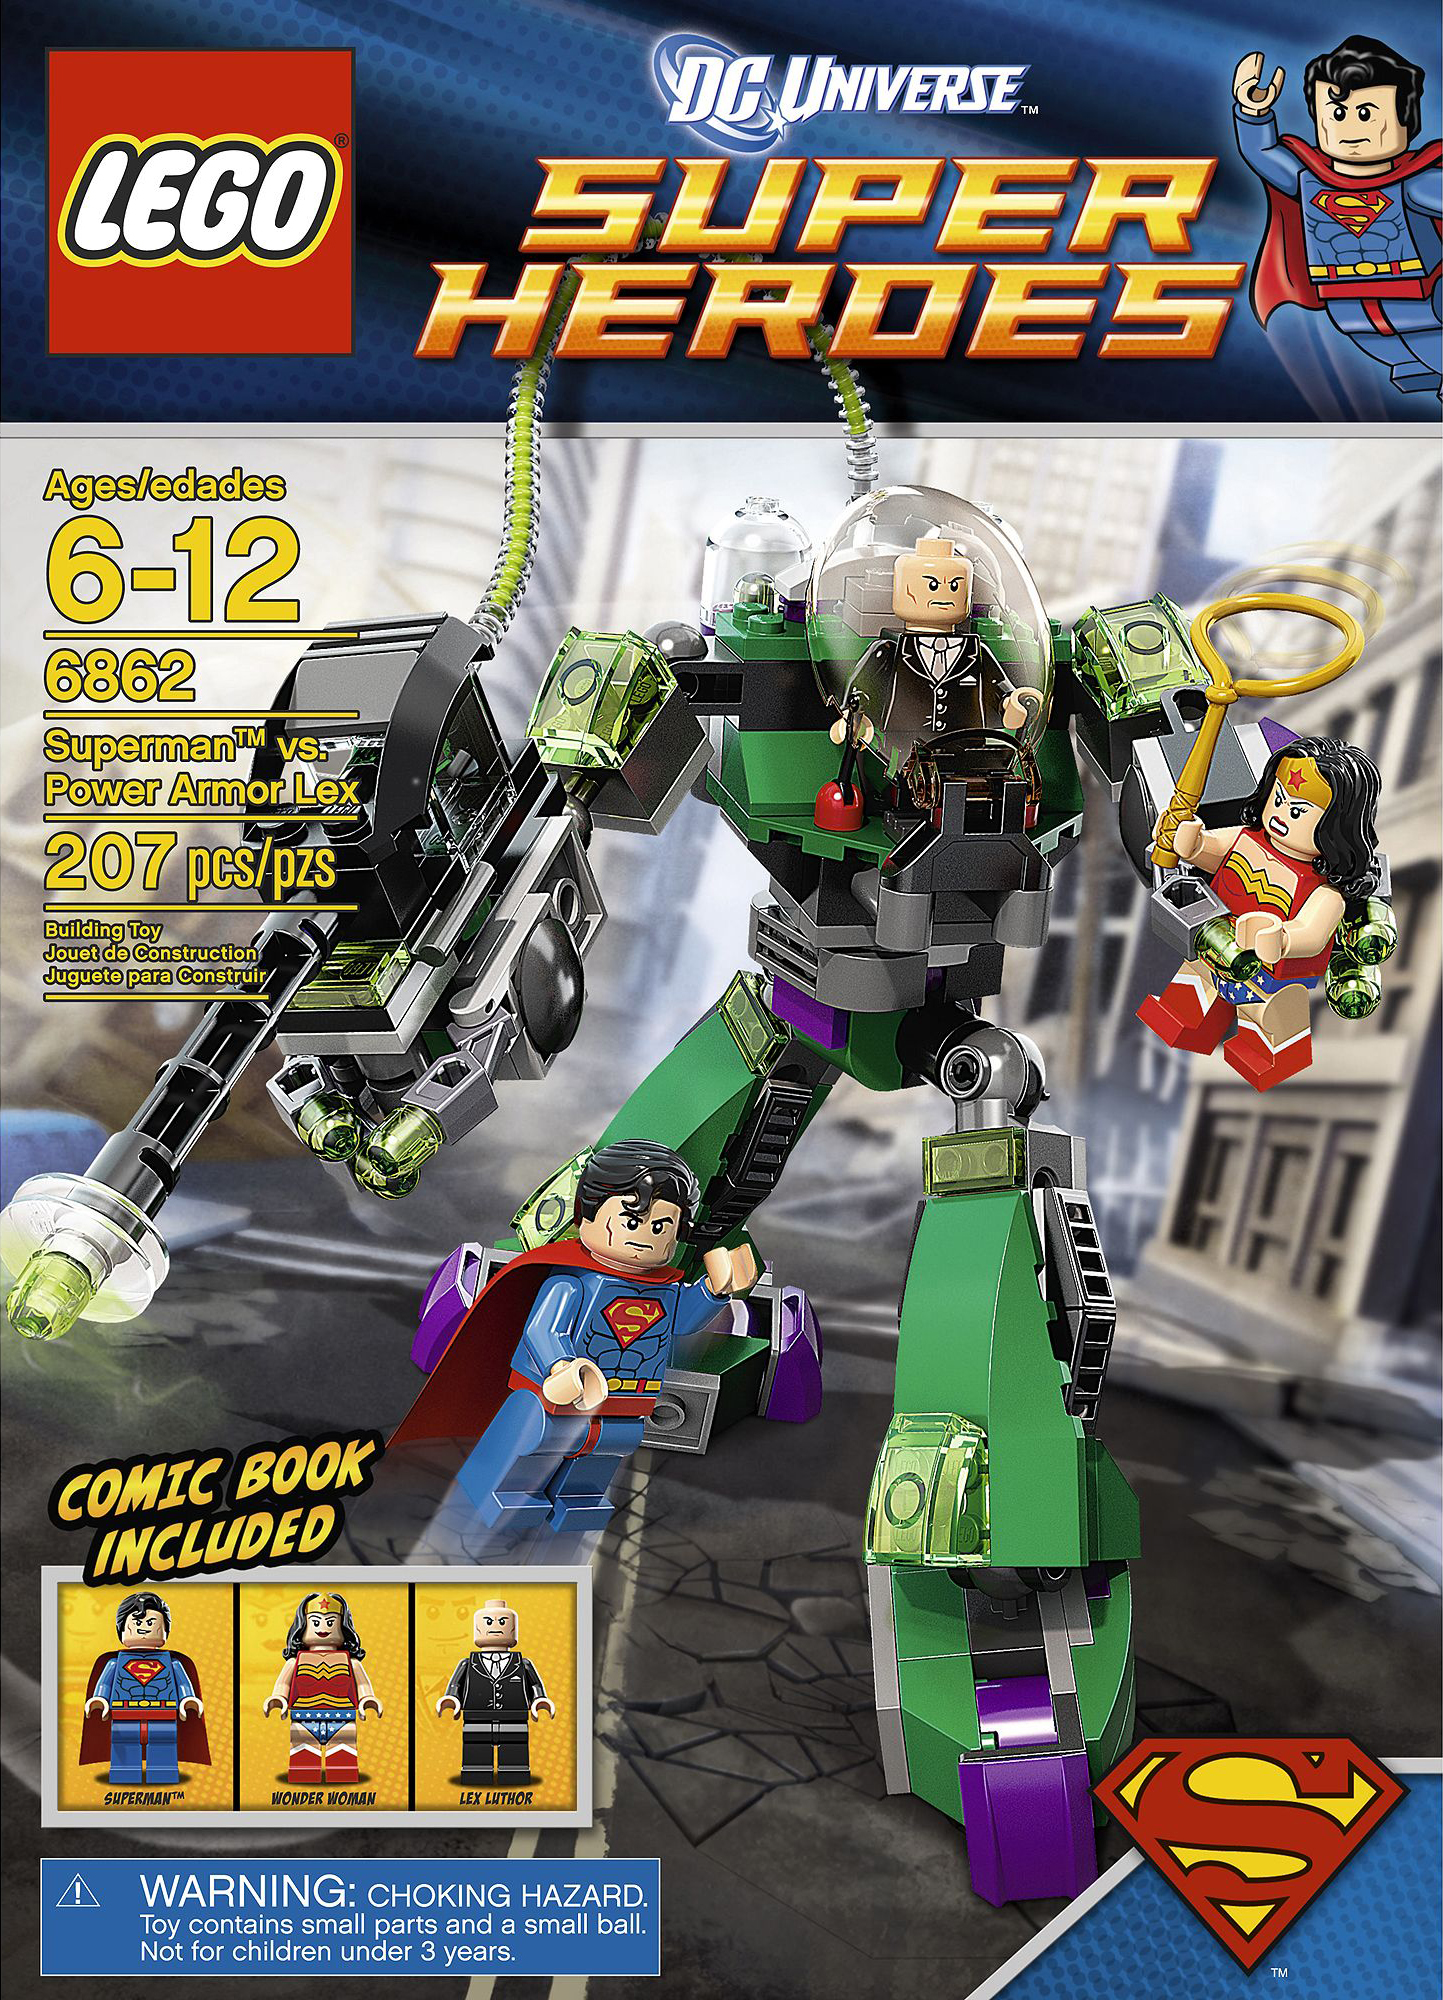 Pin lego 60032 city the lego summer wave in official images on - Lego Dc Superman Vs Power Armor Lex 6862 Retiring Soon